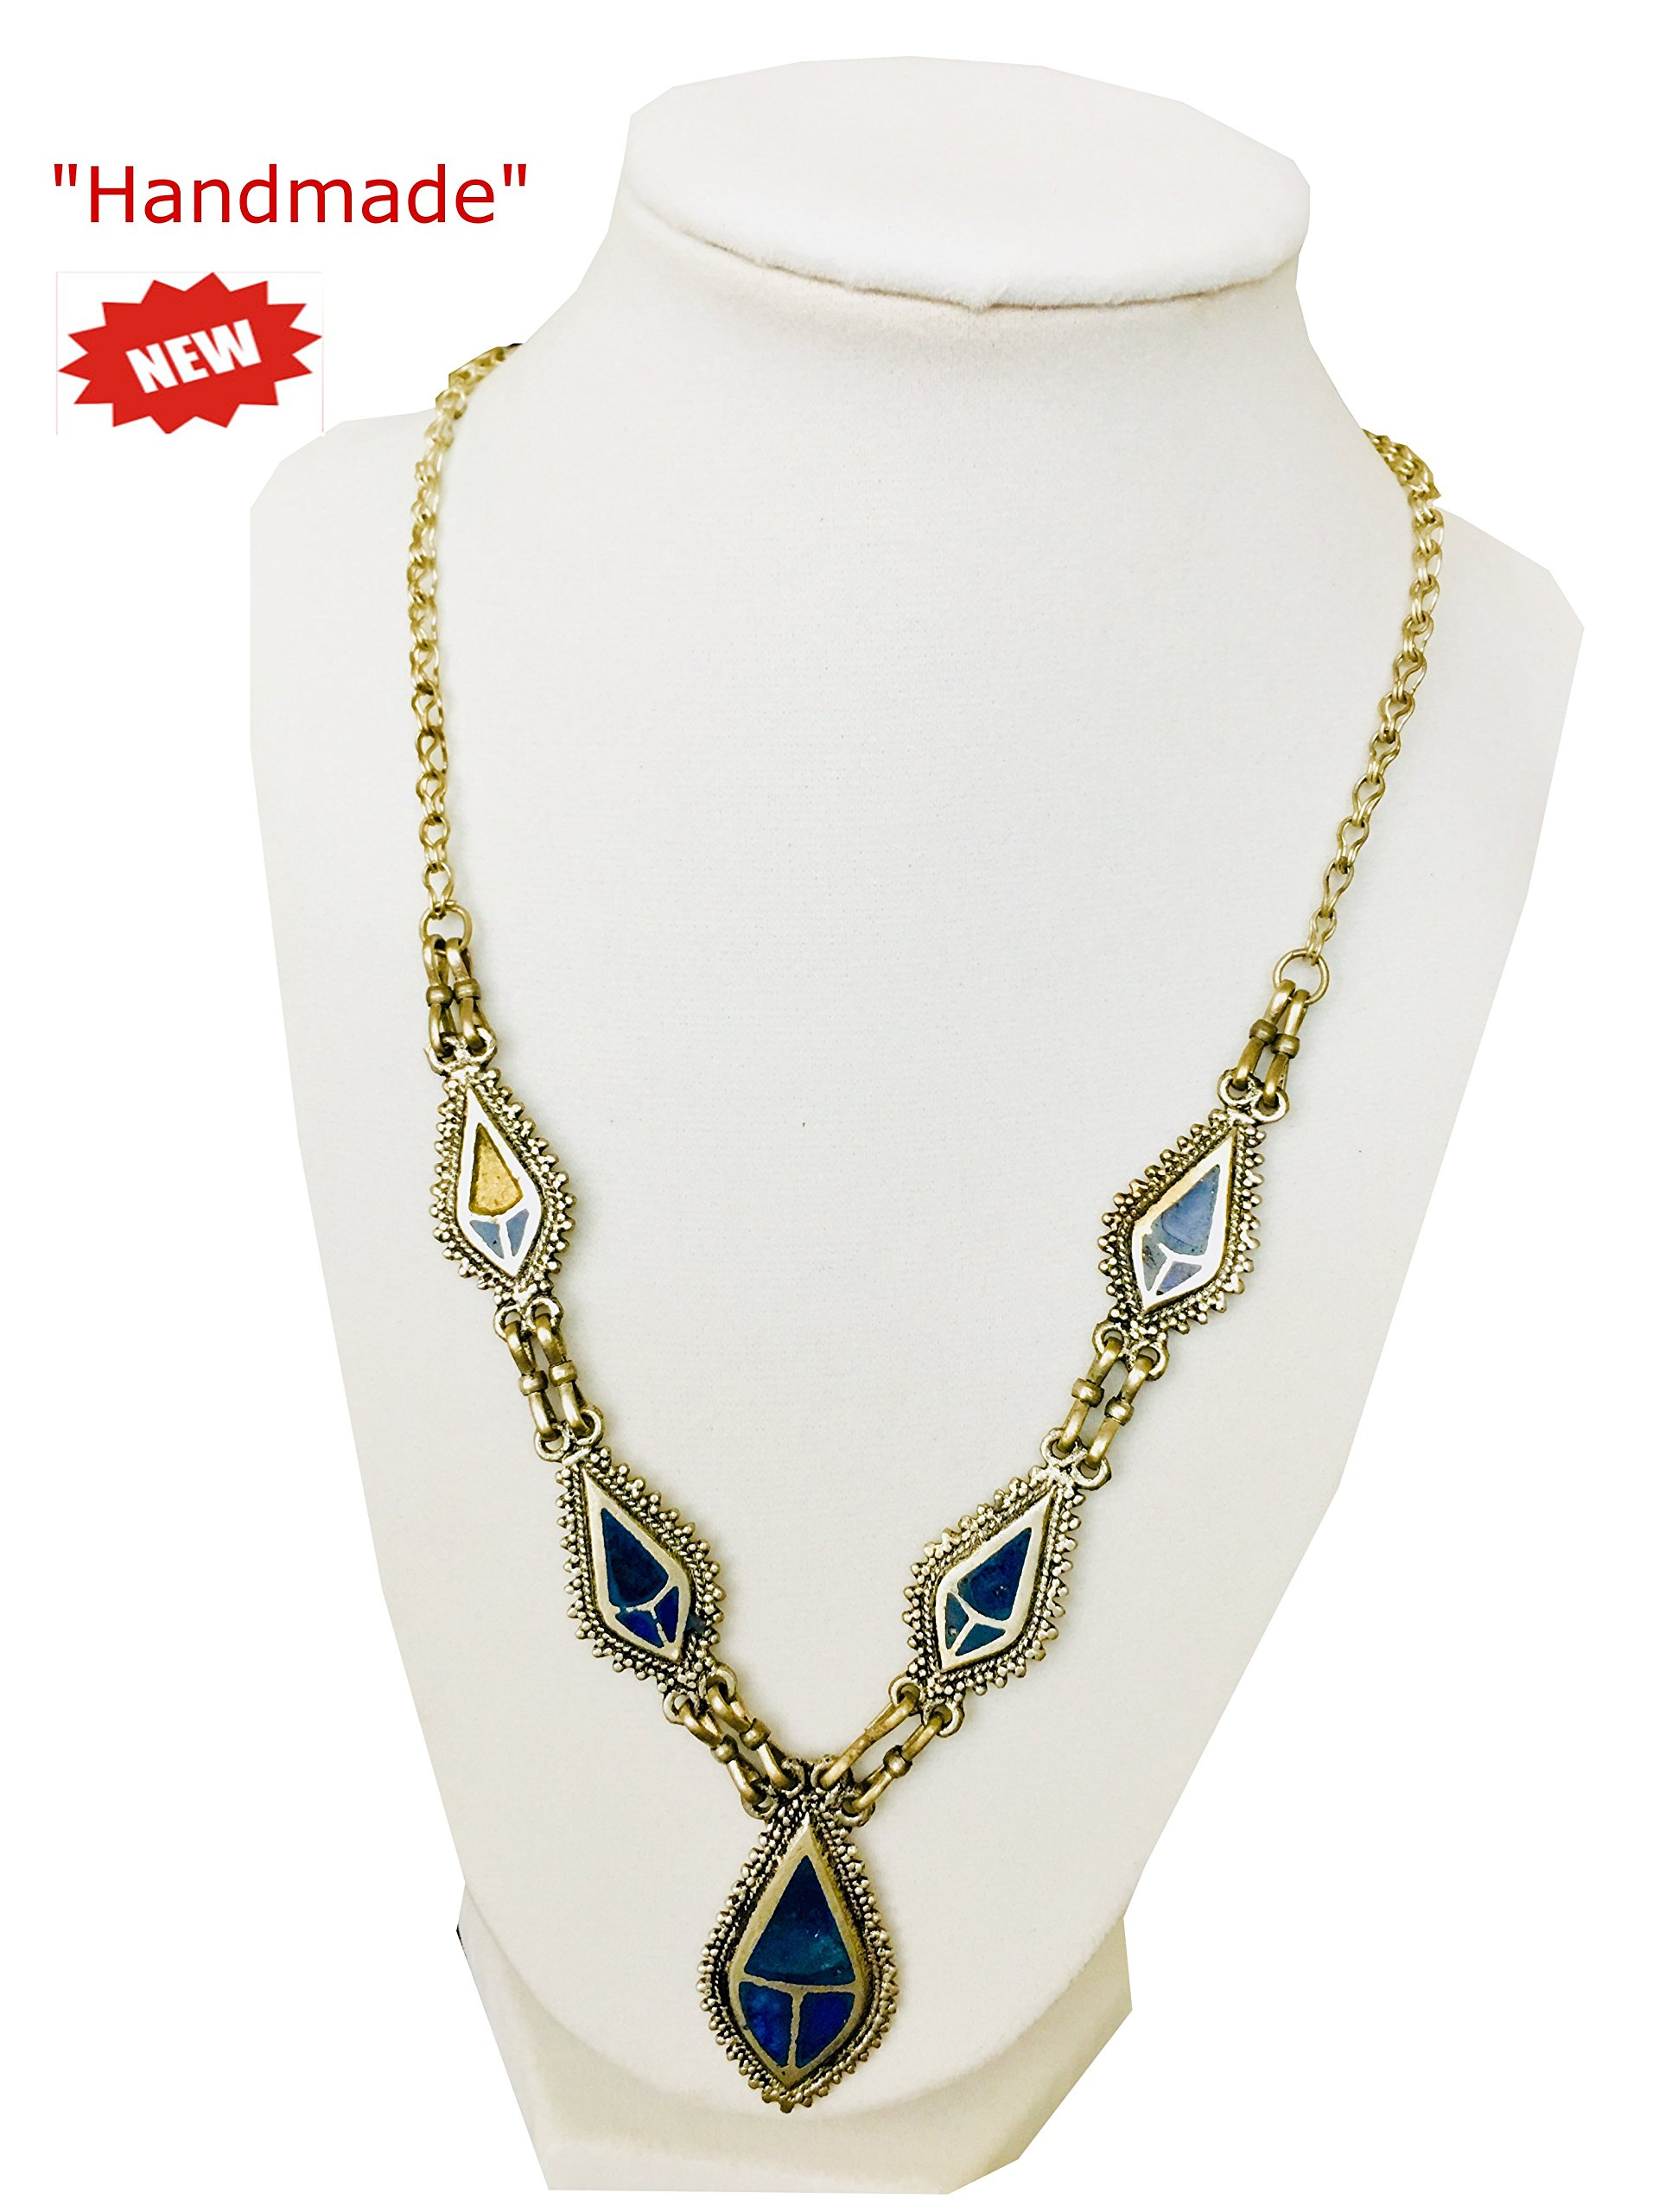 Himalayan Handmade Fine Art Elegant Blue Stone Necklace Multi Size Metal Art Comes With Gift Box